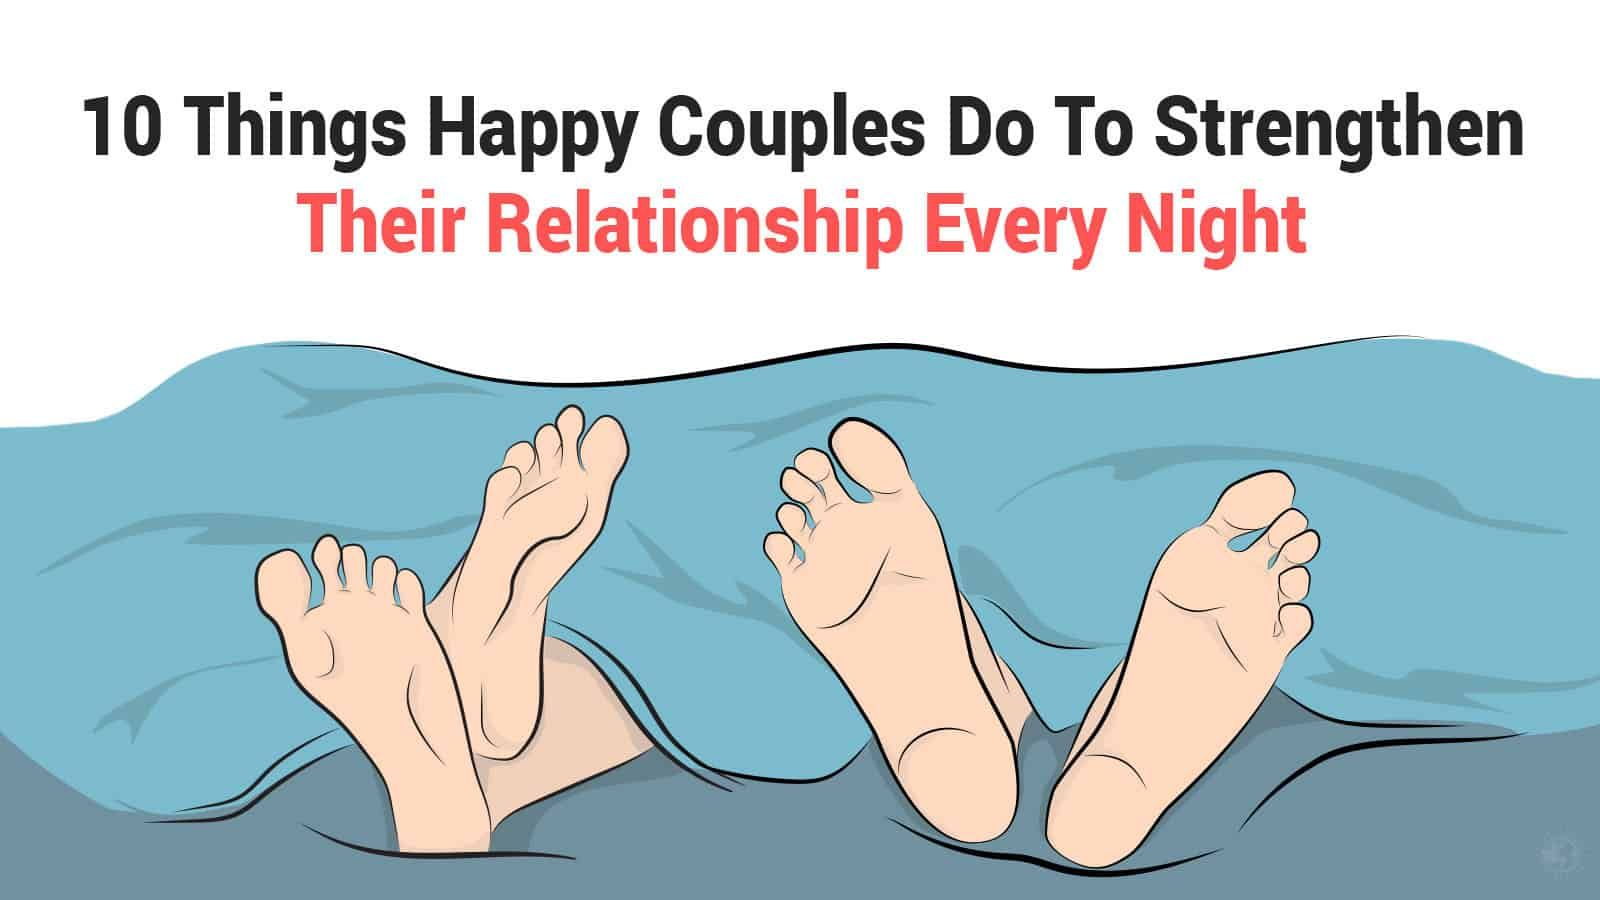 10 Things Happy Couples Do To Strengthen Their